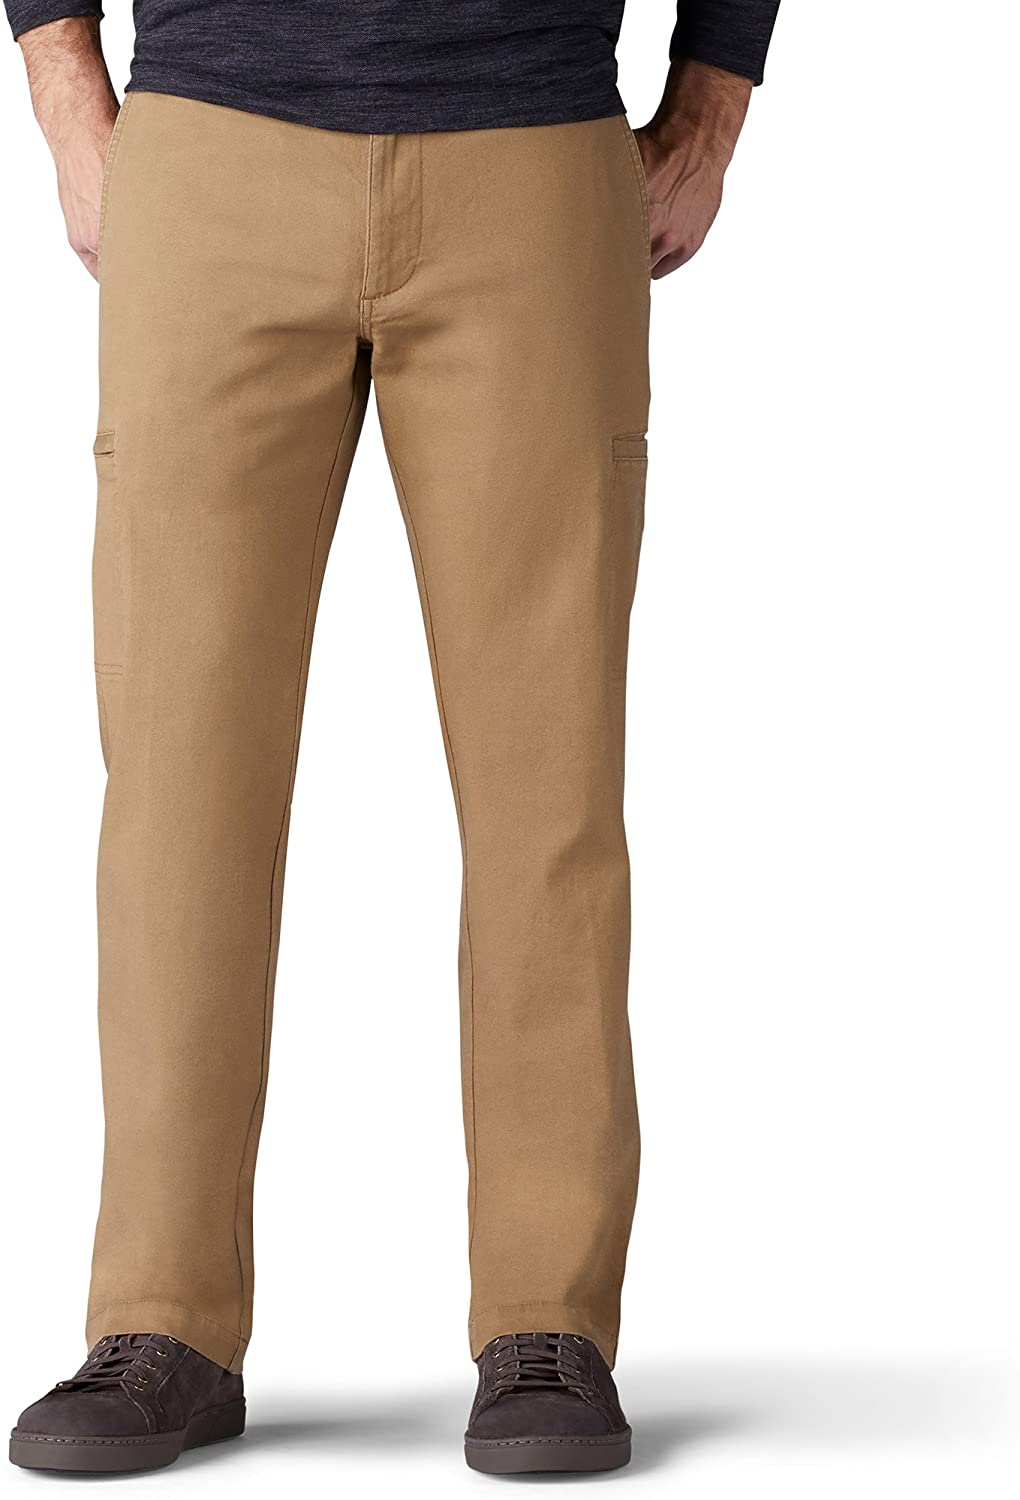 LEE Men's Big & Tall Performance Series Extreme Comfort Cargo Pant